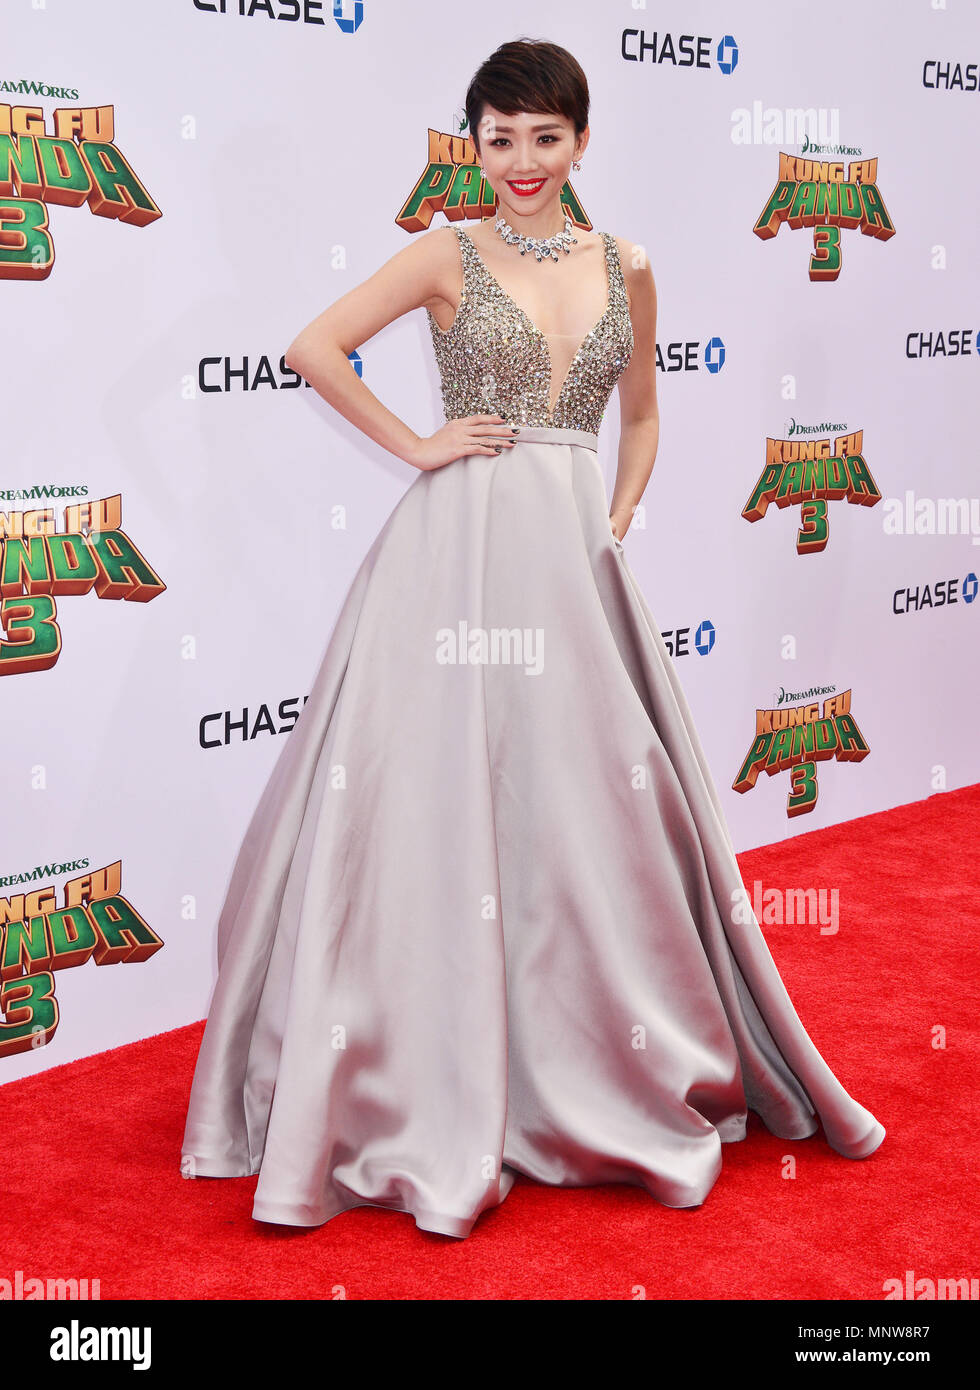 Toc Tien 075  at the Kung Fu Panda Premiere at the TCL Chinese Theatre in Los Angeles, January 16, 2016.-------- Toc Tien 075  --------- Event in Hollywood Life - California,  Red Carpet Event, Vertical, USA, Film Industry, Celebrities,  Photography, Bestof, Arts Culture and Entertainment, Topix Celebrities fashion /  from the Red Carpet-2016, one person, Vertical, Best of, Hollywood Life, Event in Hollywood Life - California,  Red Carpet and backstage, USA, Film Industry, Celebrities,  movie celebrities, TV celebrities, Music celebrities, Photography, Bestof, Arts Culture and Entertainment,   - Stock Image